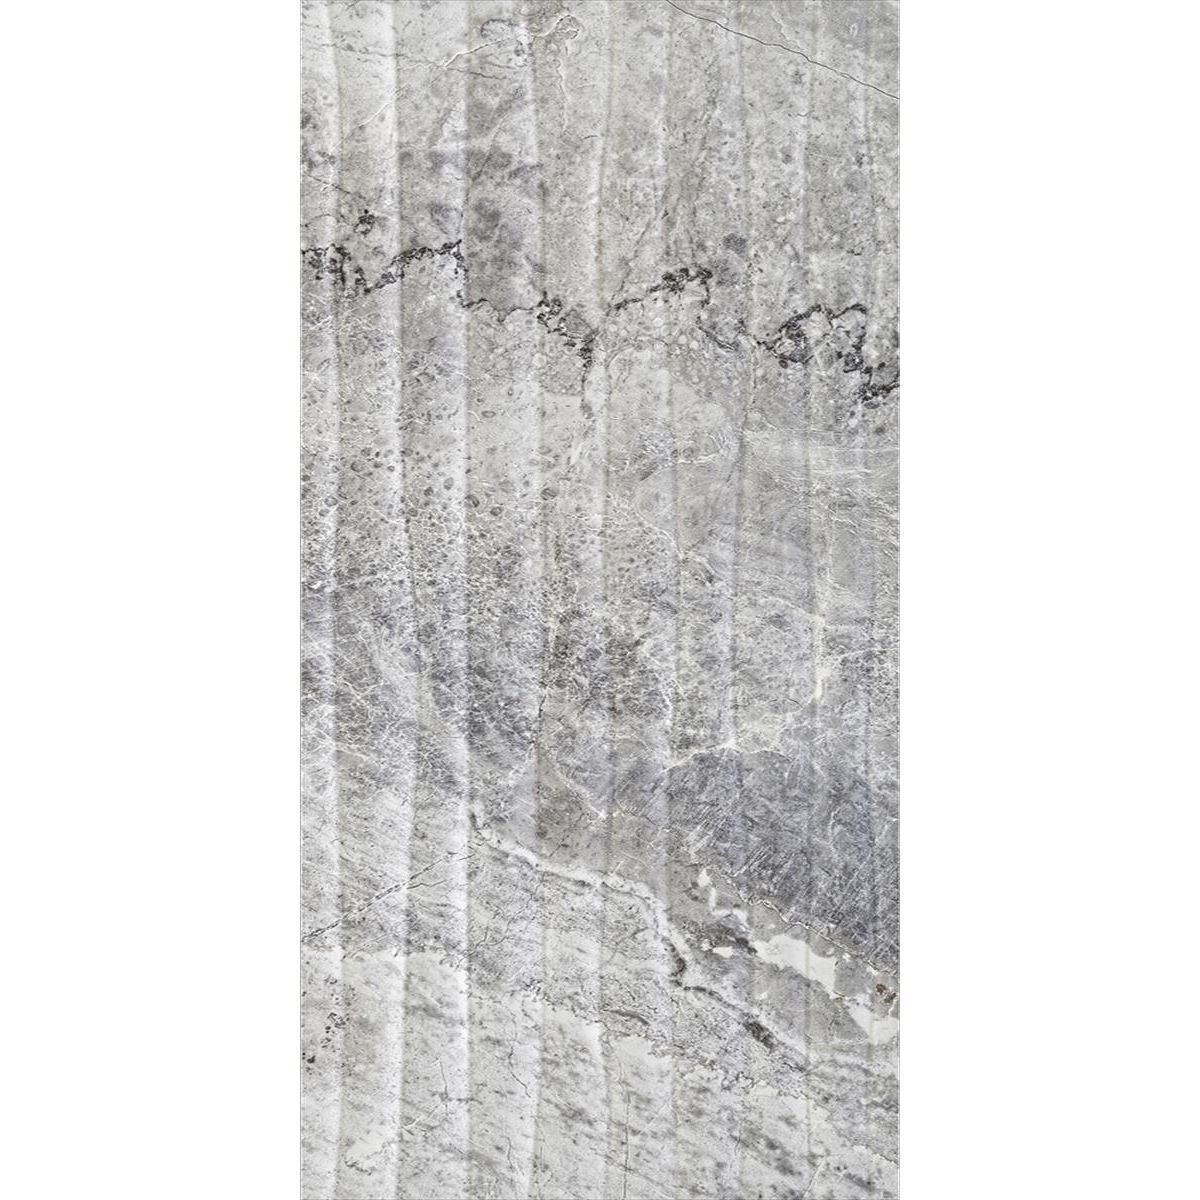 MARBLE / VERSUS M WALL WAVE DECOR